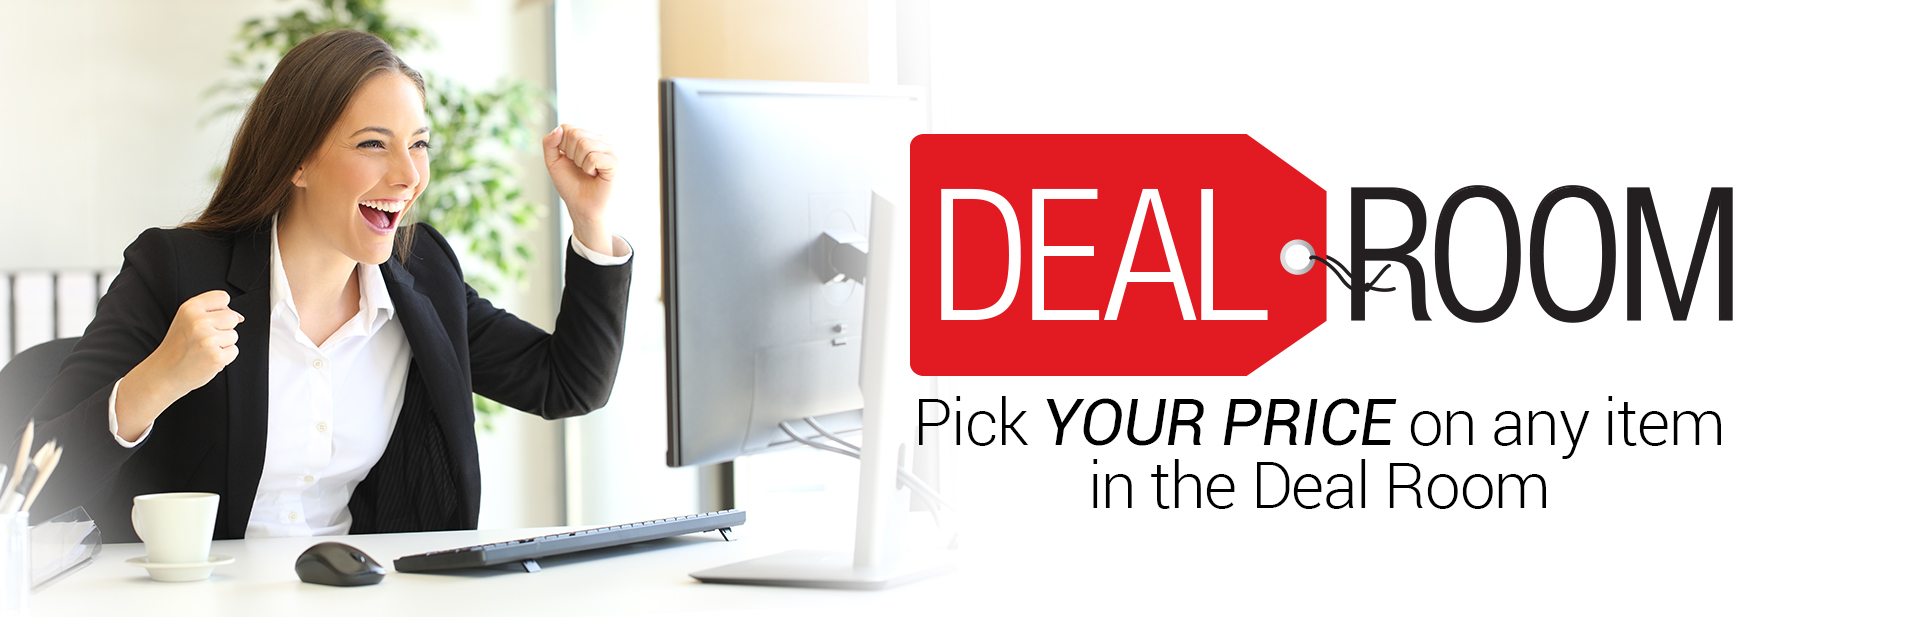 Make Your Offer In Our Deal Room